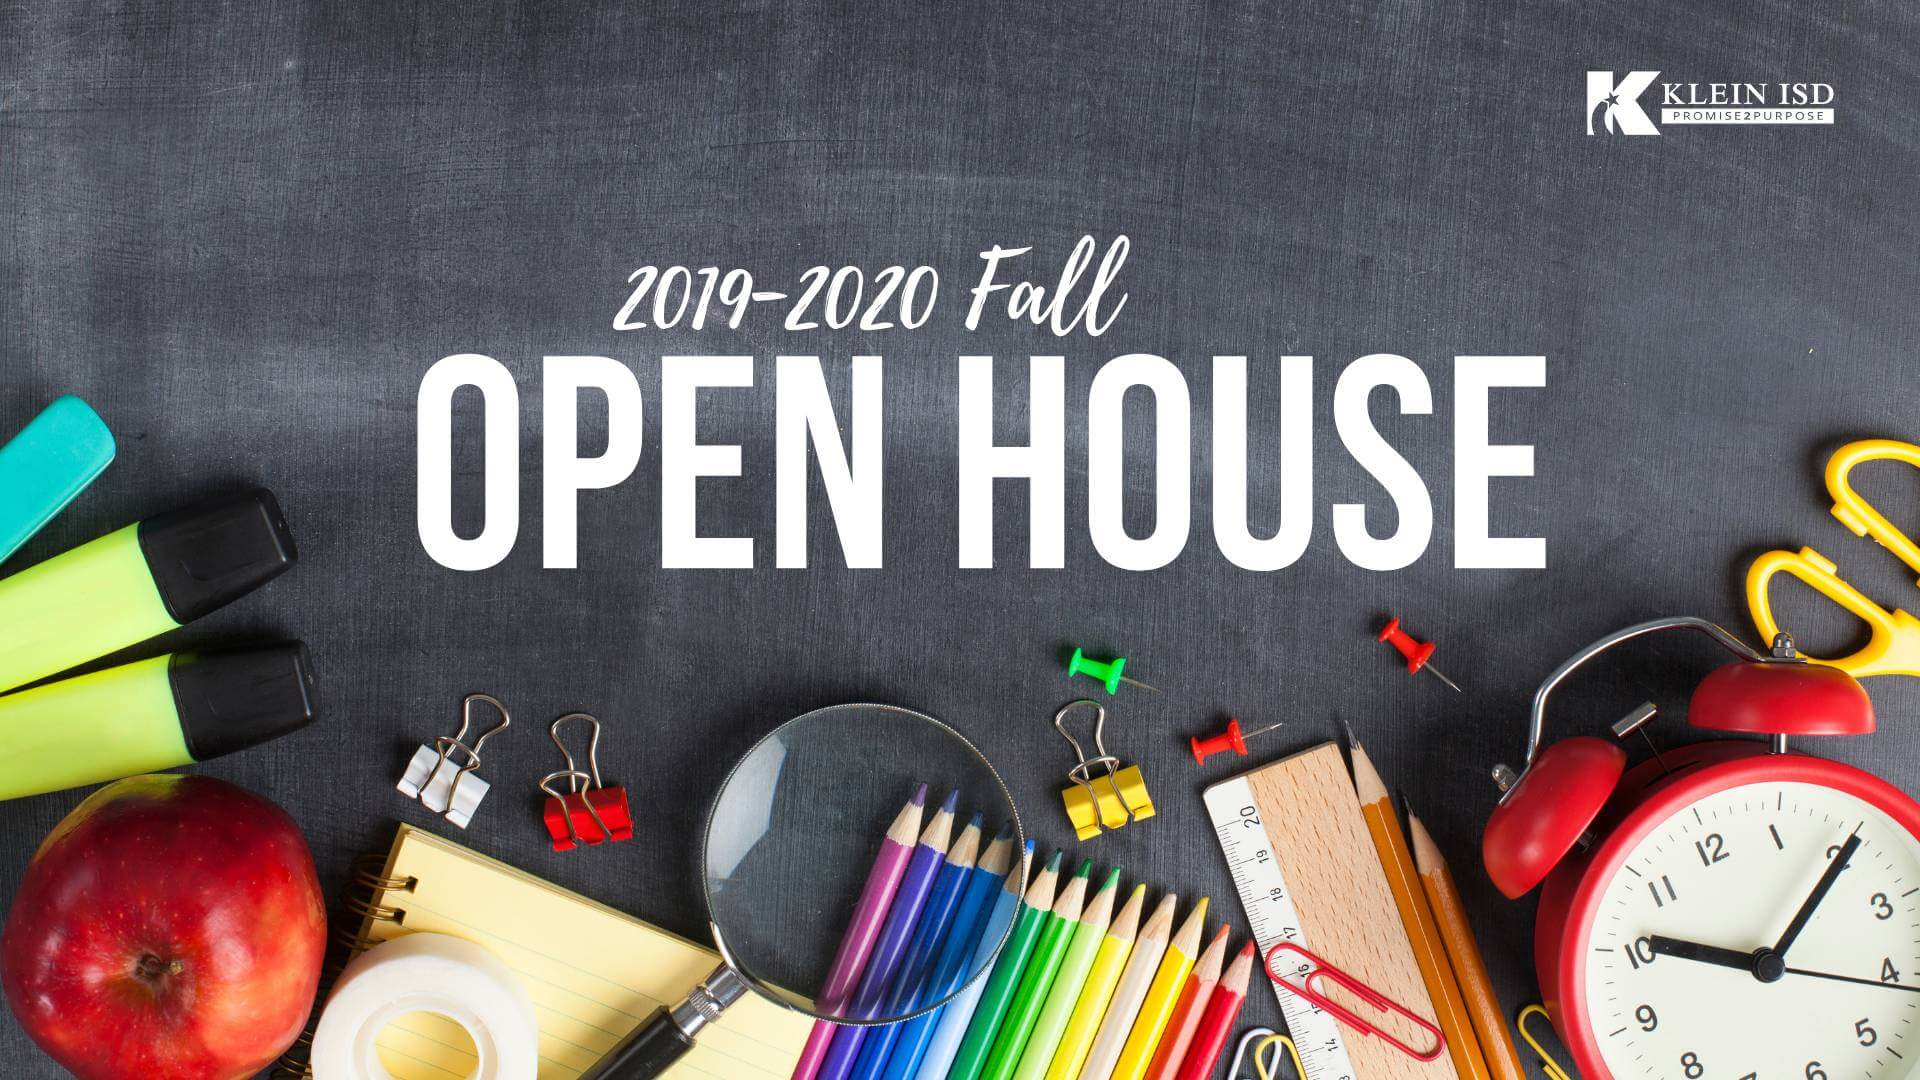 the open house 2019